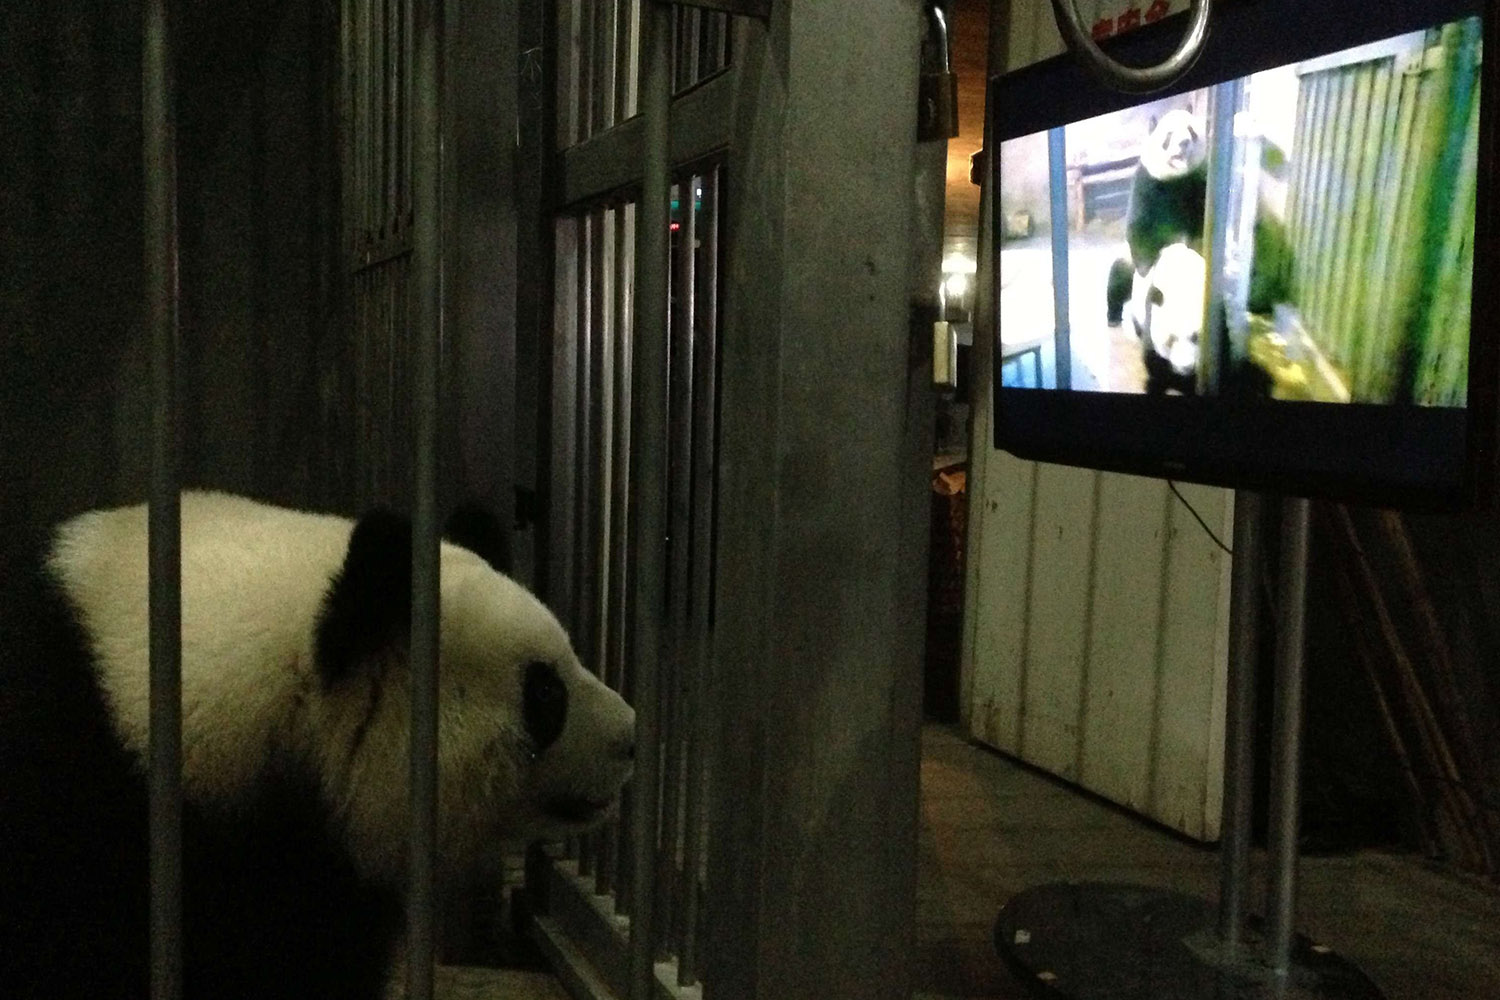 March 10, 2013. This photo provided by Chengdu Research Base of Giant Panda Breeding shows female giant panda Ke Lin watching a panda mating video, Sichuan province, China. According to the staff of the research base, they showed Ke Lin this video trying to let her know how to mate because she kept rejecting panda Yong Yong from mounting her although she was in oestrum. After watching this video, Ke Lin and Yong Yong successfully mated.